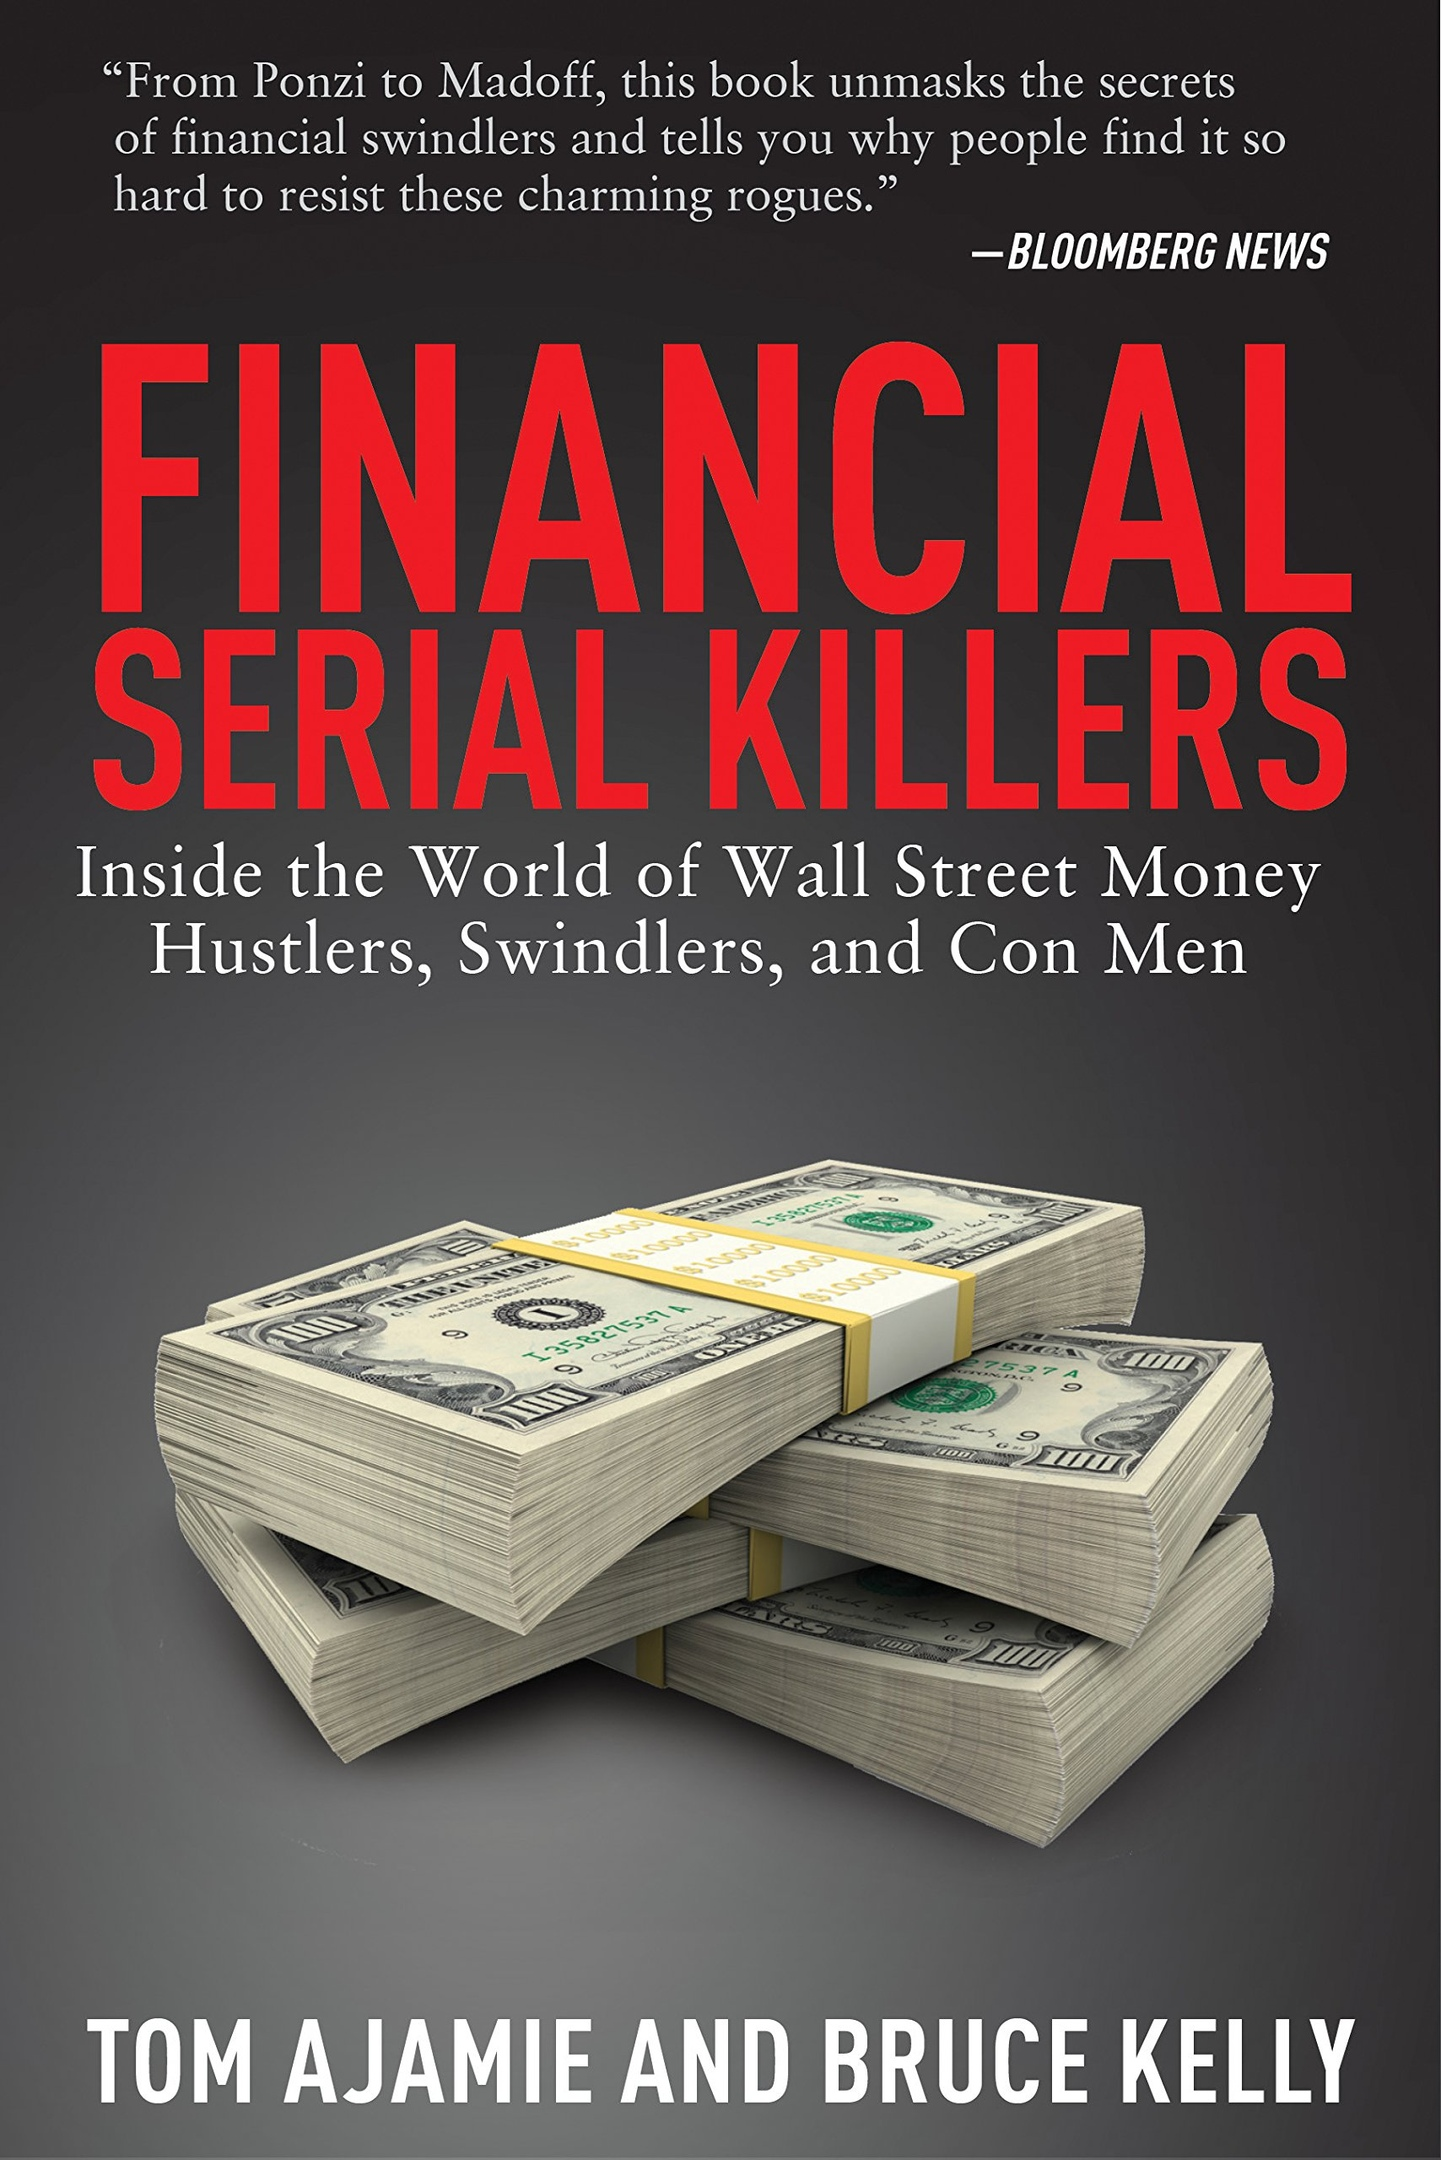 Tom Ajamie, Bruce Kelly – Financial Serial Killers